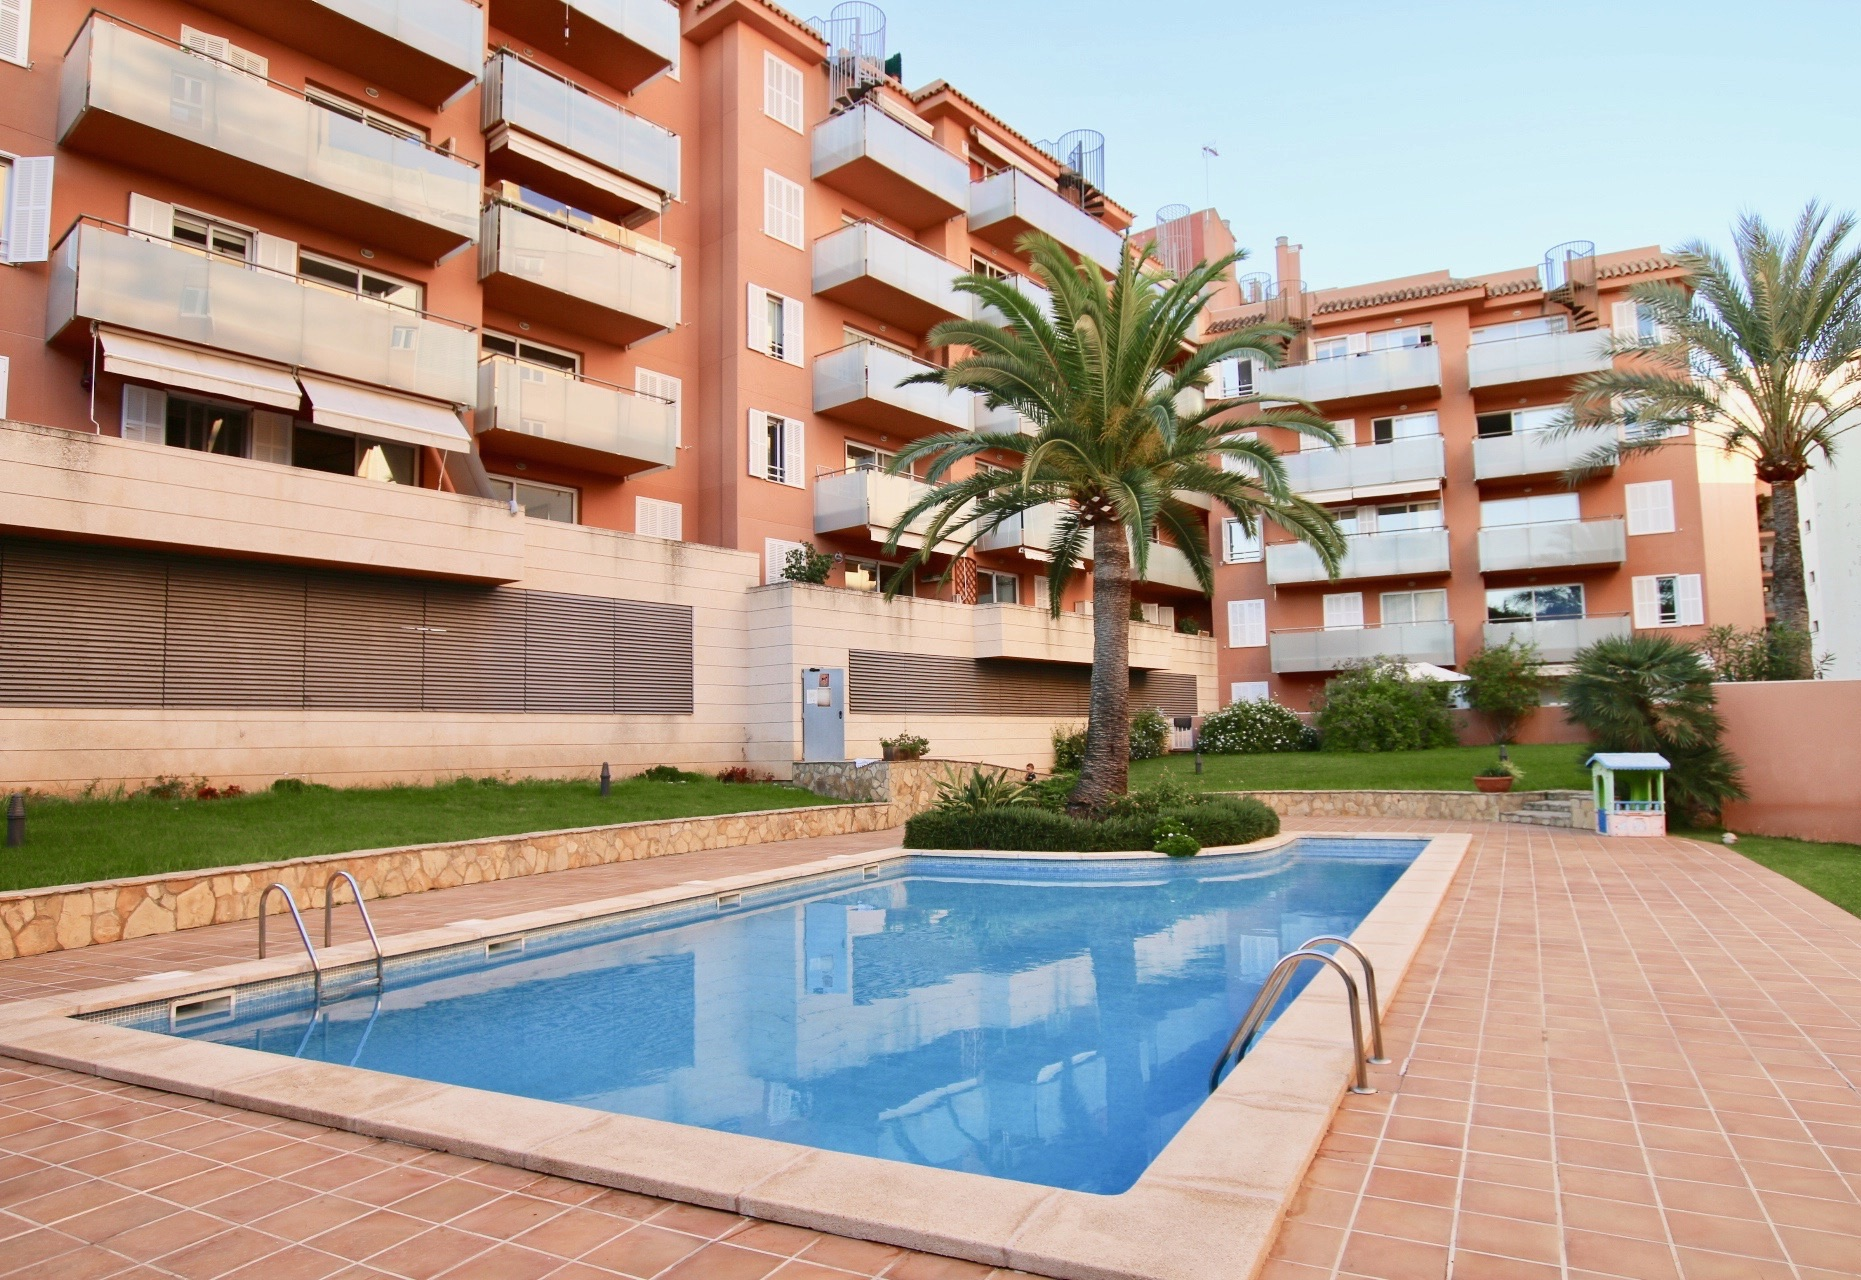 3 beds / 2 baths ground floor with swimming pool close to the Paseo Maritimo of Palma @ Mallorca